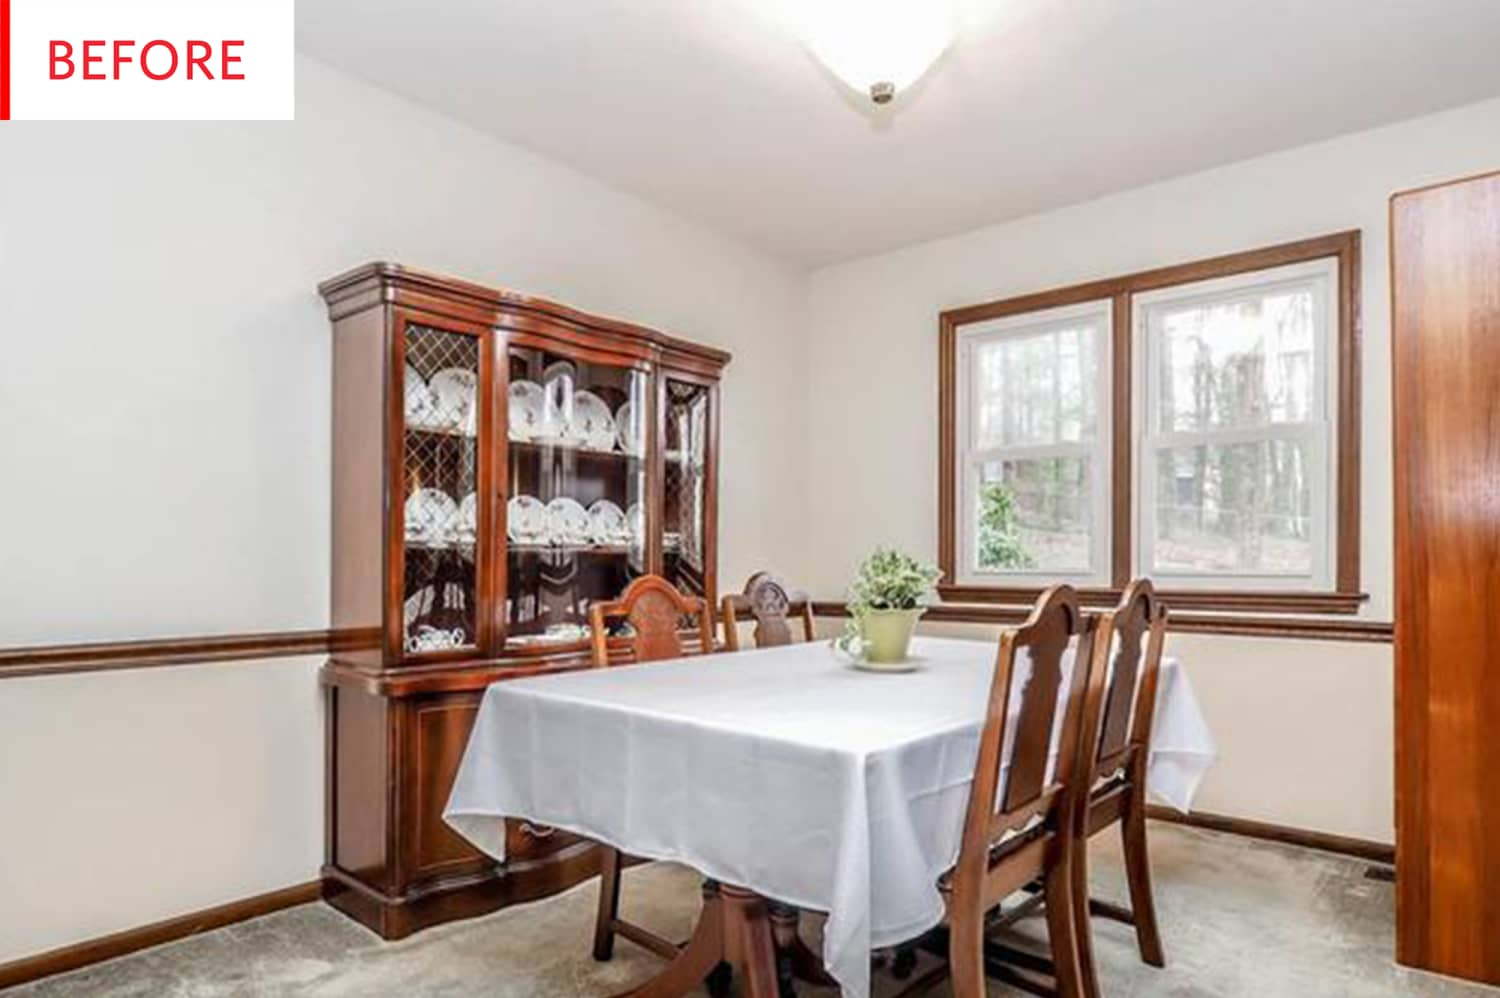 Before and After: This Bold Dining Room Only Cost $150 to Completely Redo